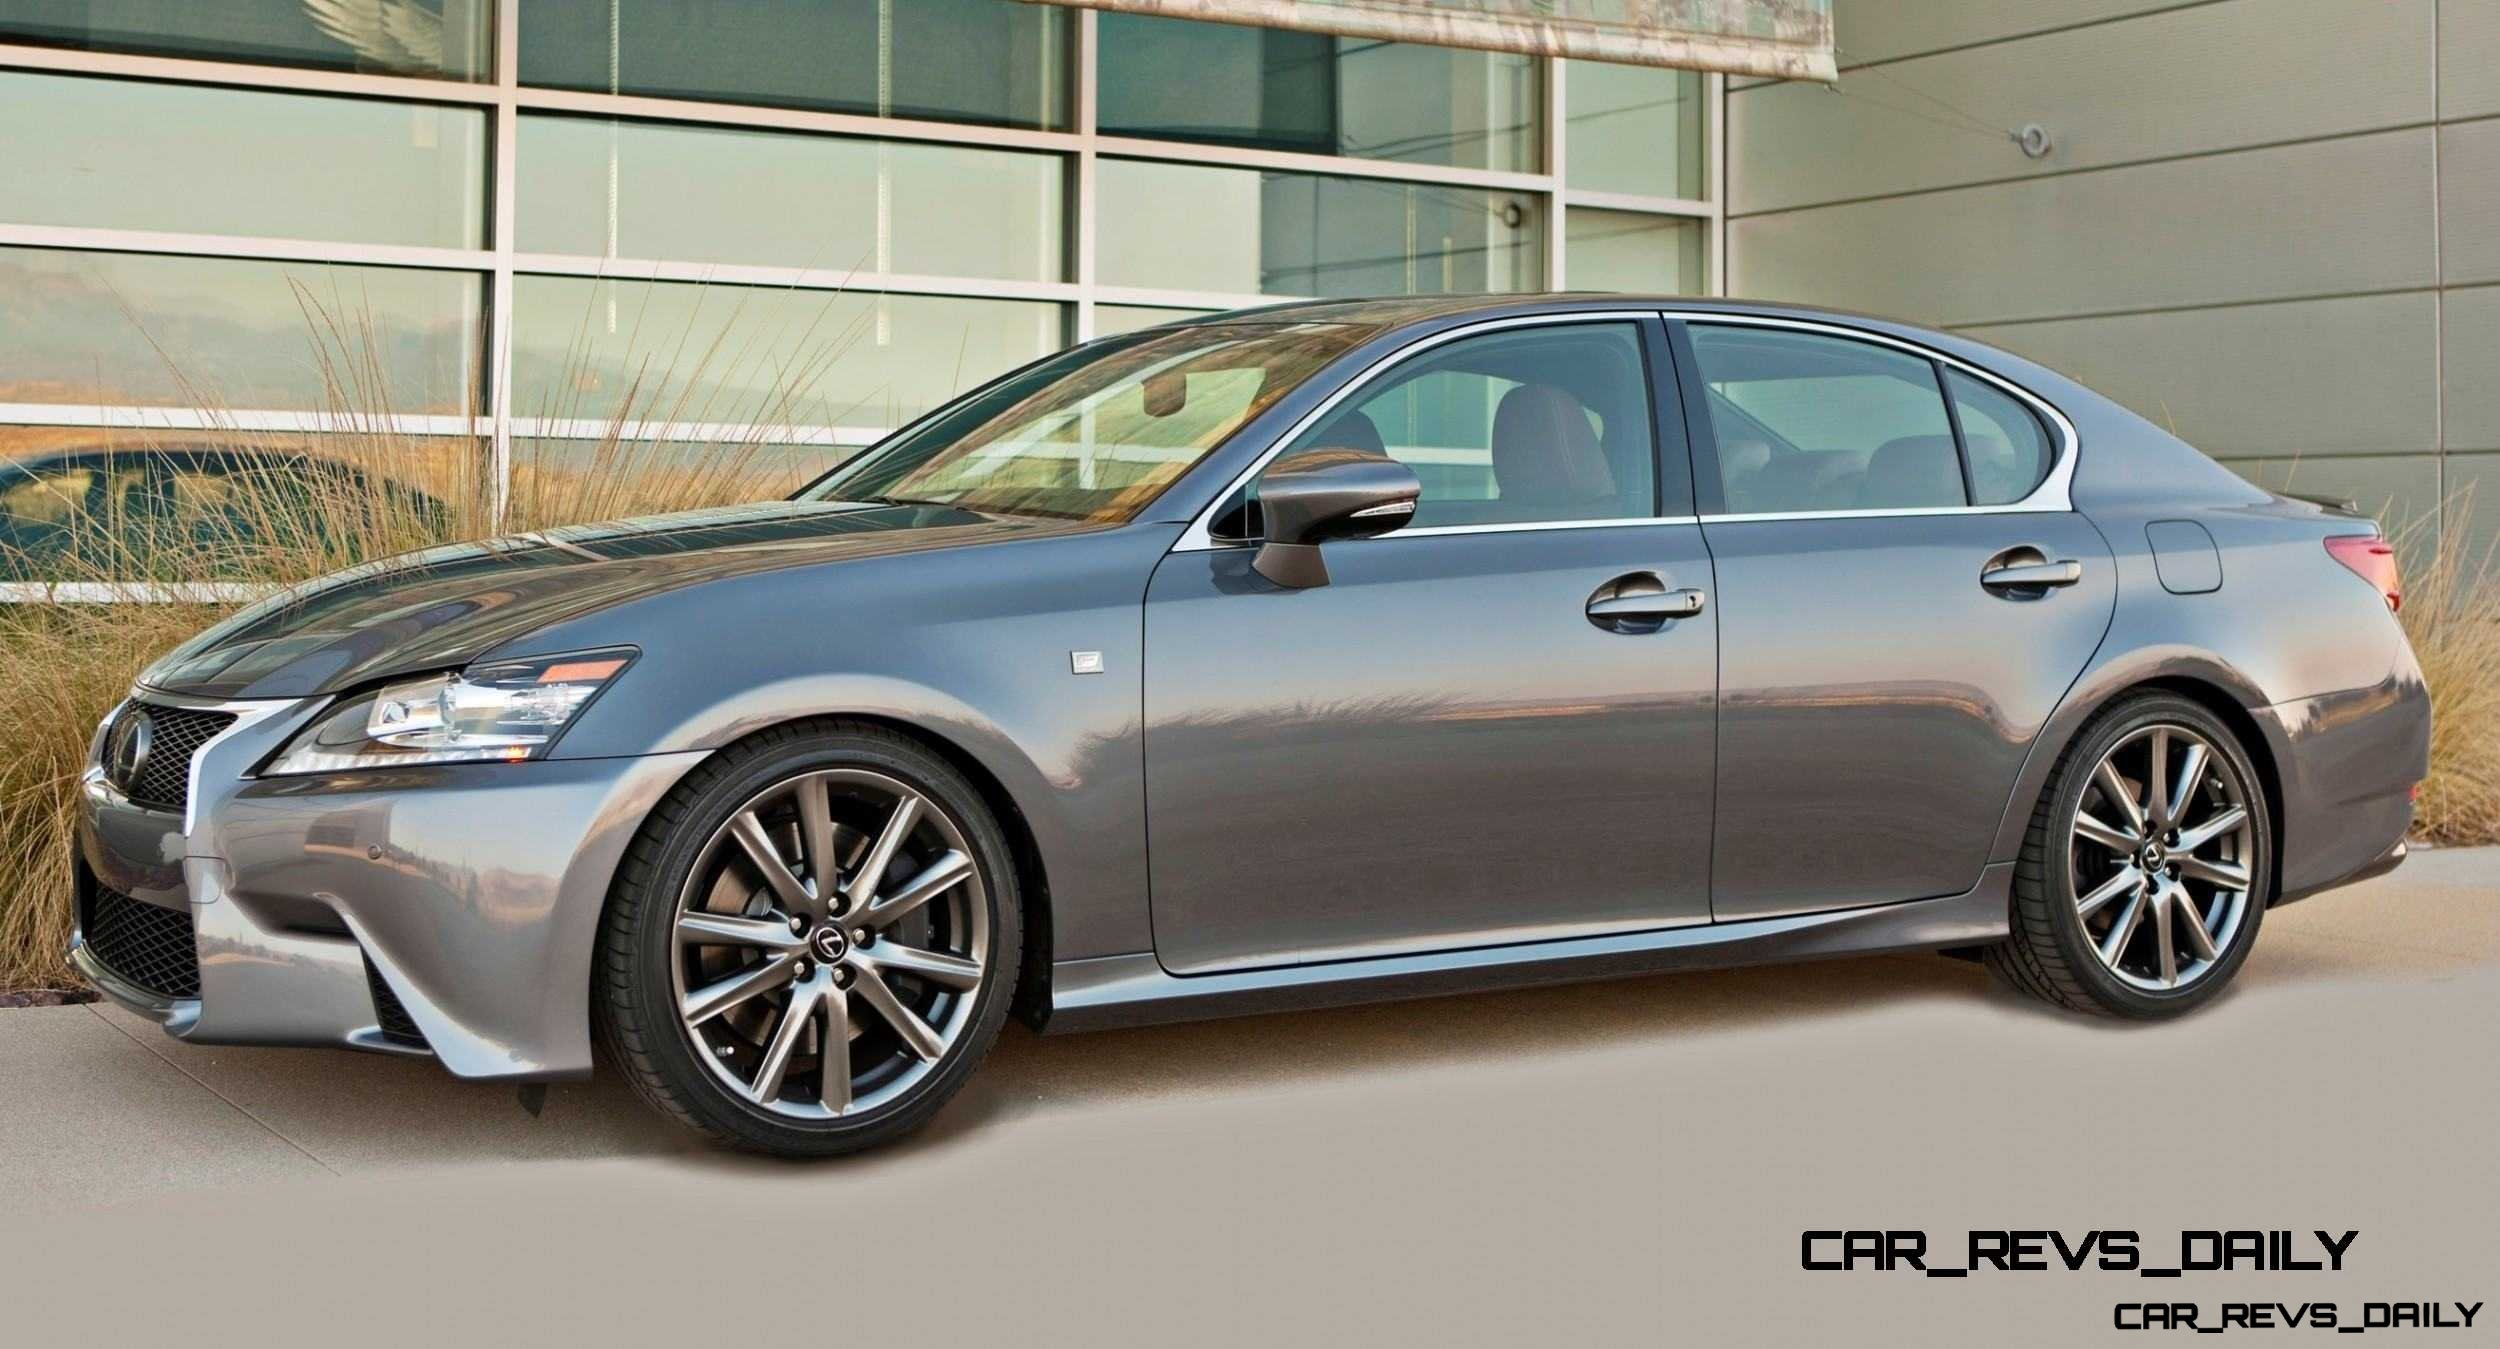 2014 lexus gs350 and gs f sport buyers guide info 15. Black Bedroom Furniture Sets. Home Design Ideas